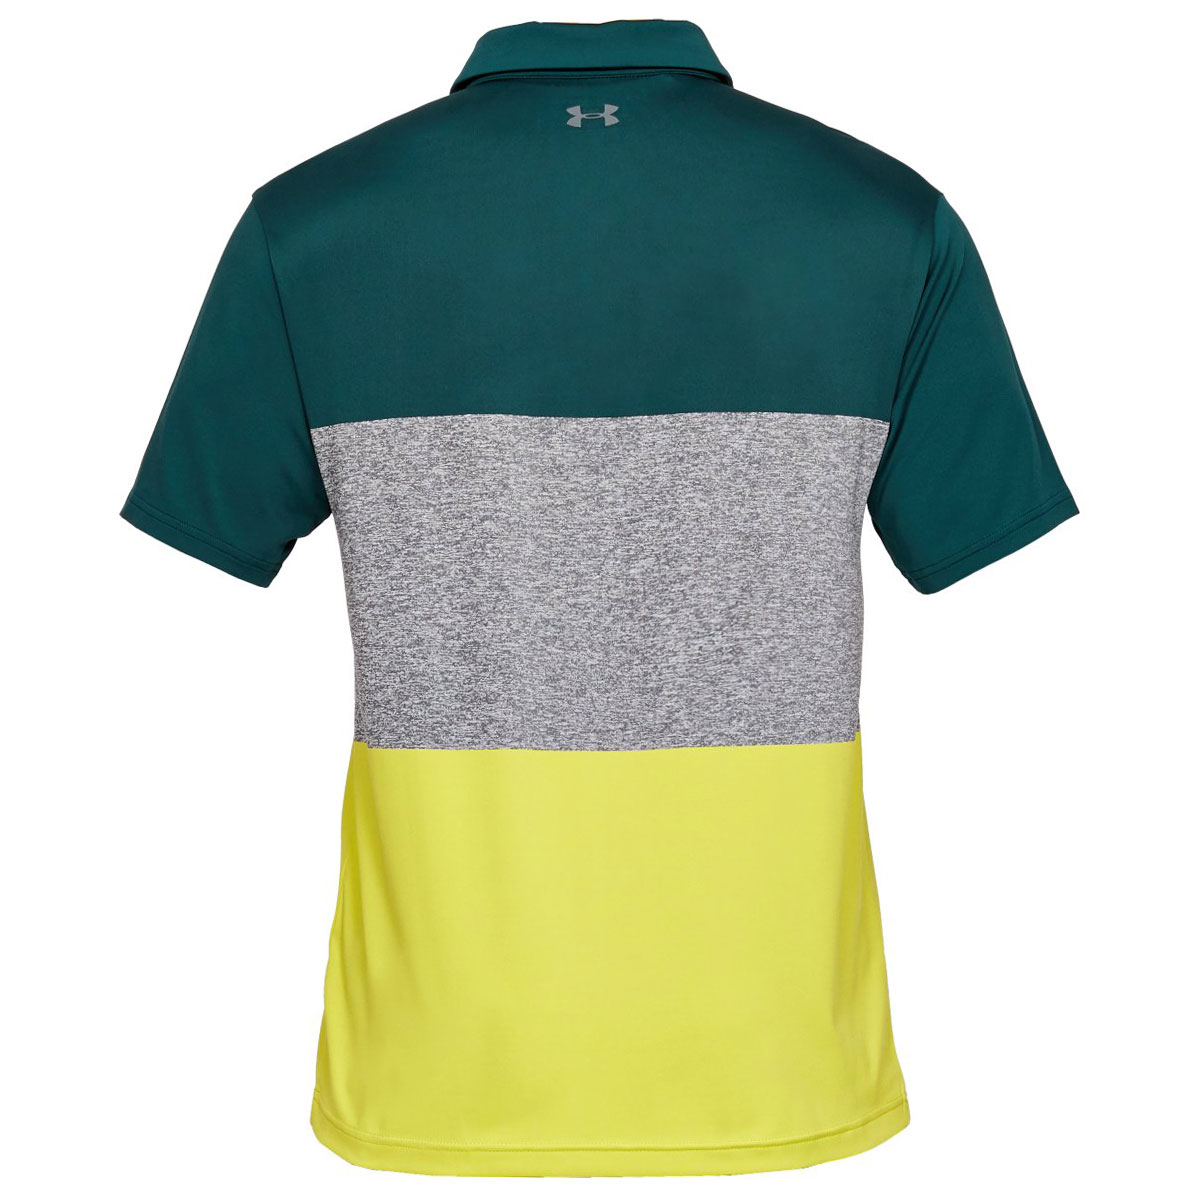 Under-Armour-Mens-2019-Playoff-Polo-2-0-Breathable-Light-Stretch-Polo-Shirt thumbnail 29